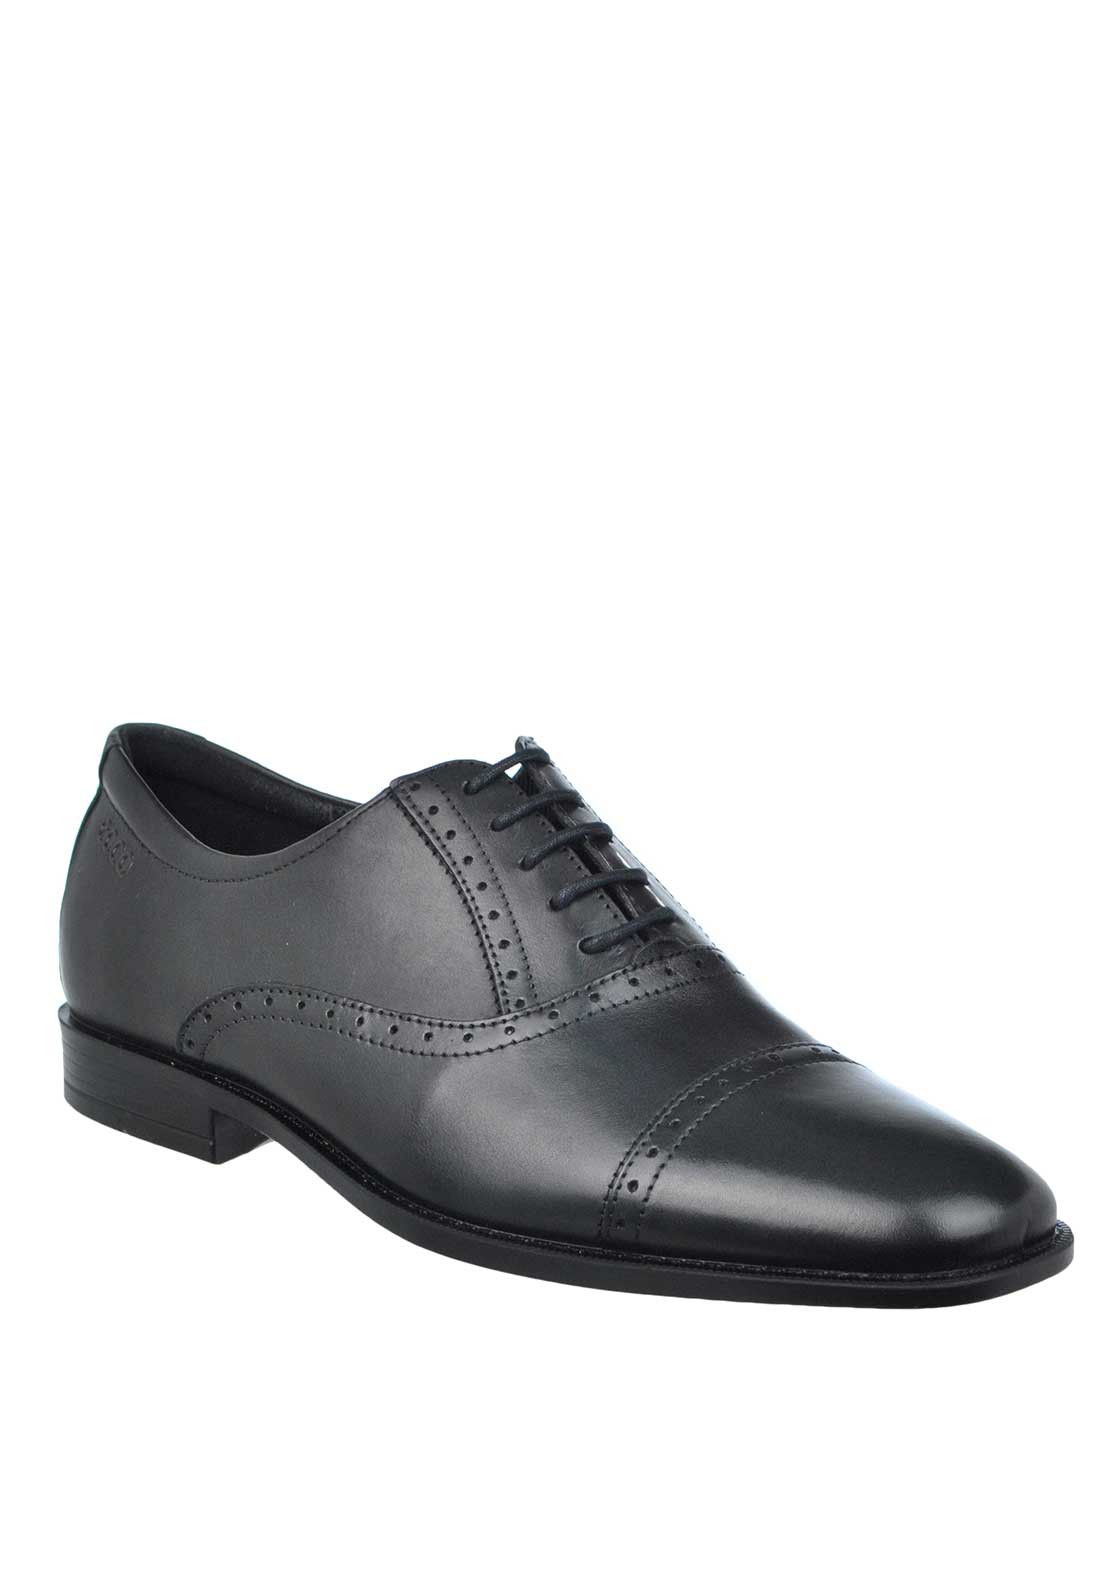 ECCO Mens Edinburgh Leather Brogue Lace Up Shoe, Black